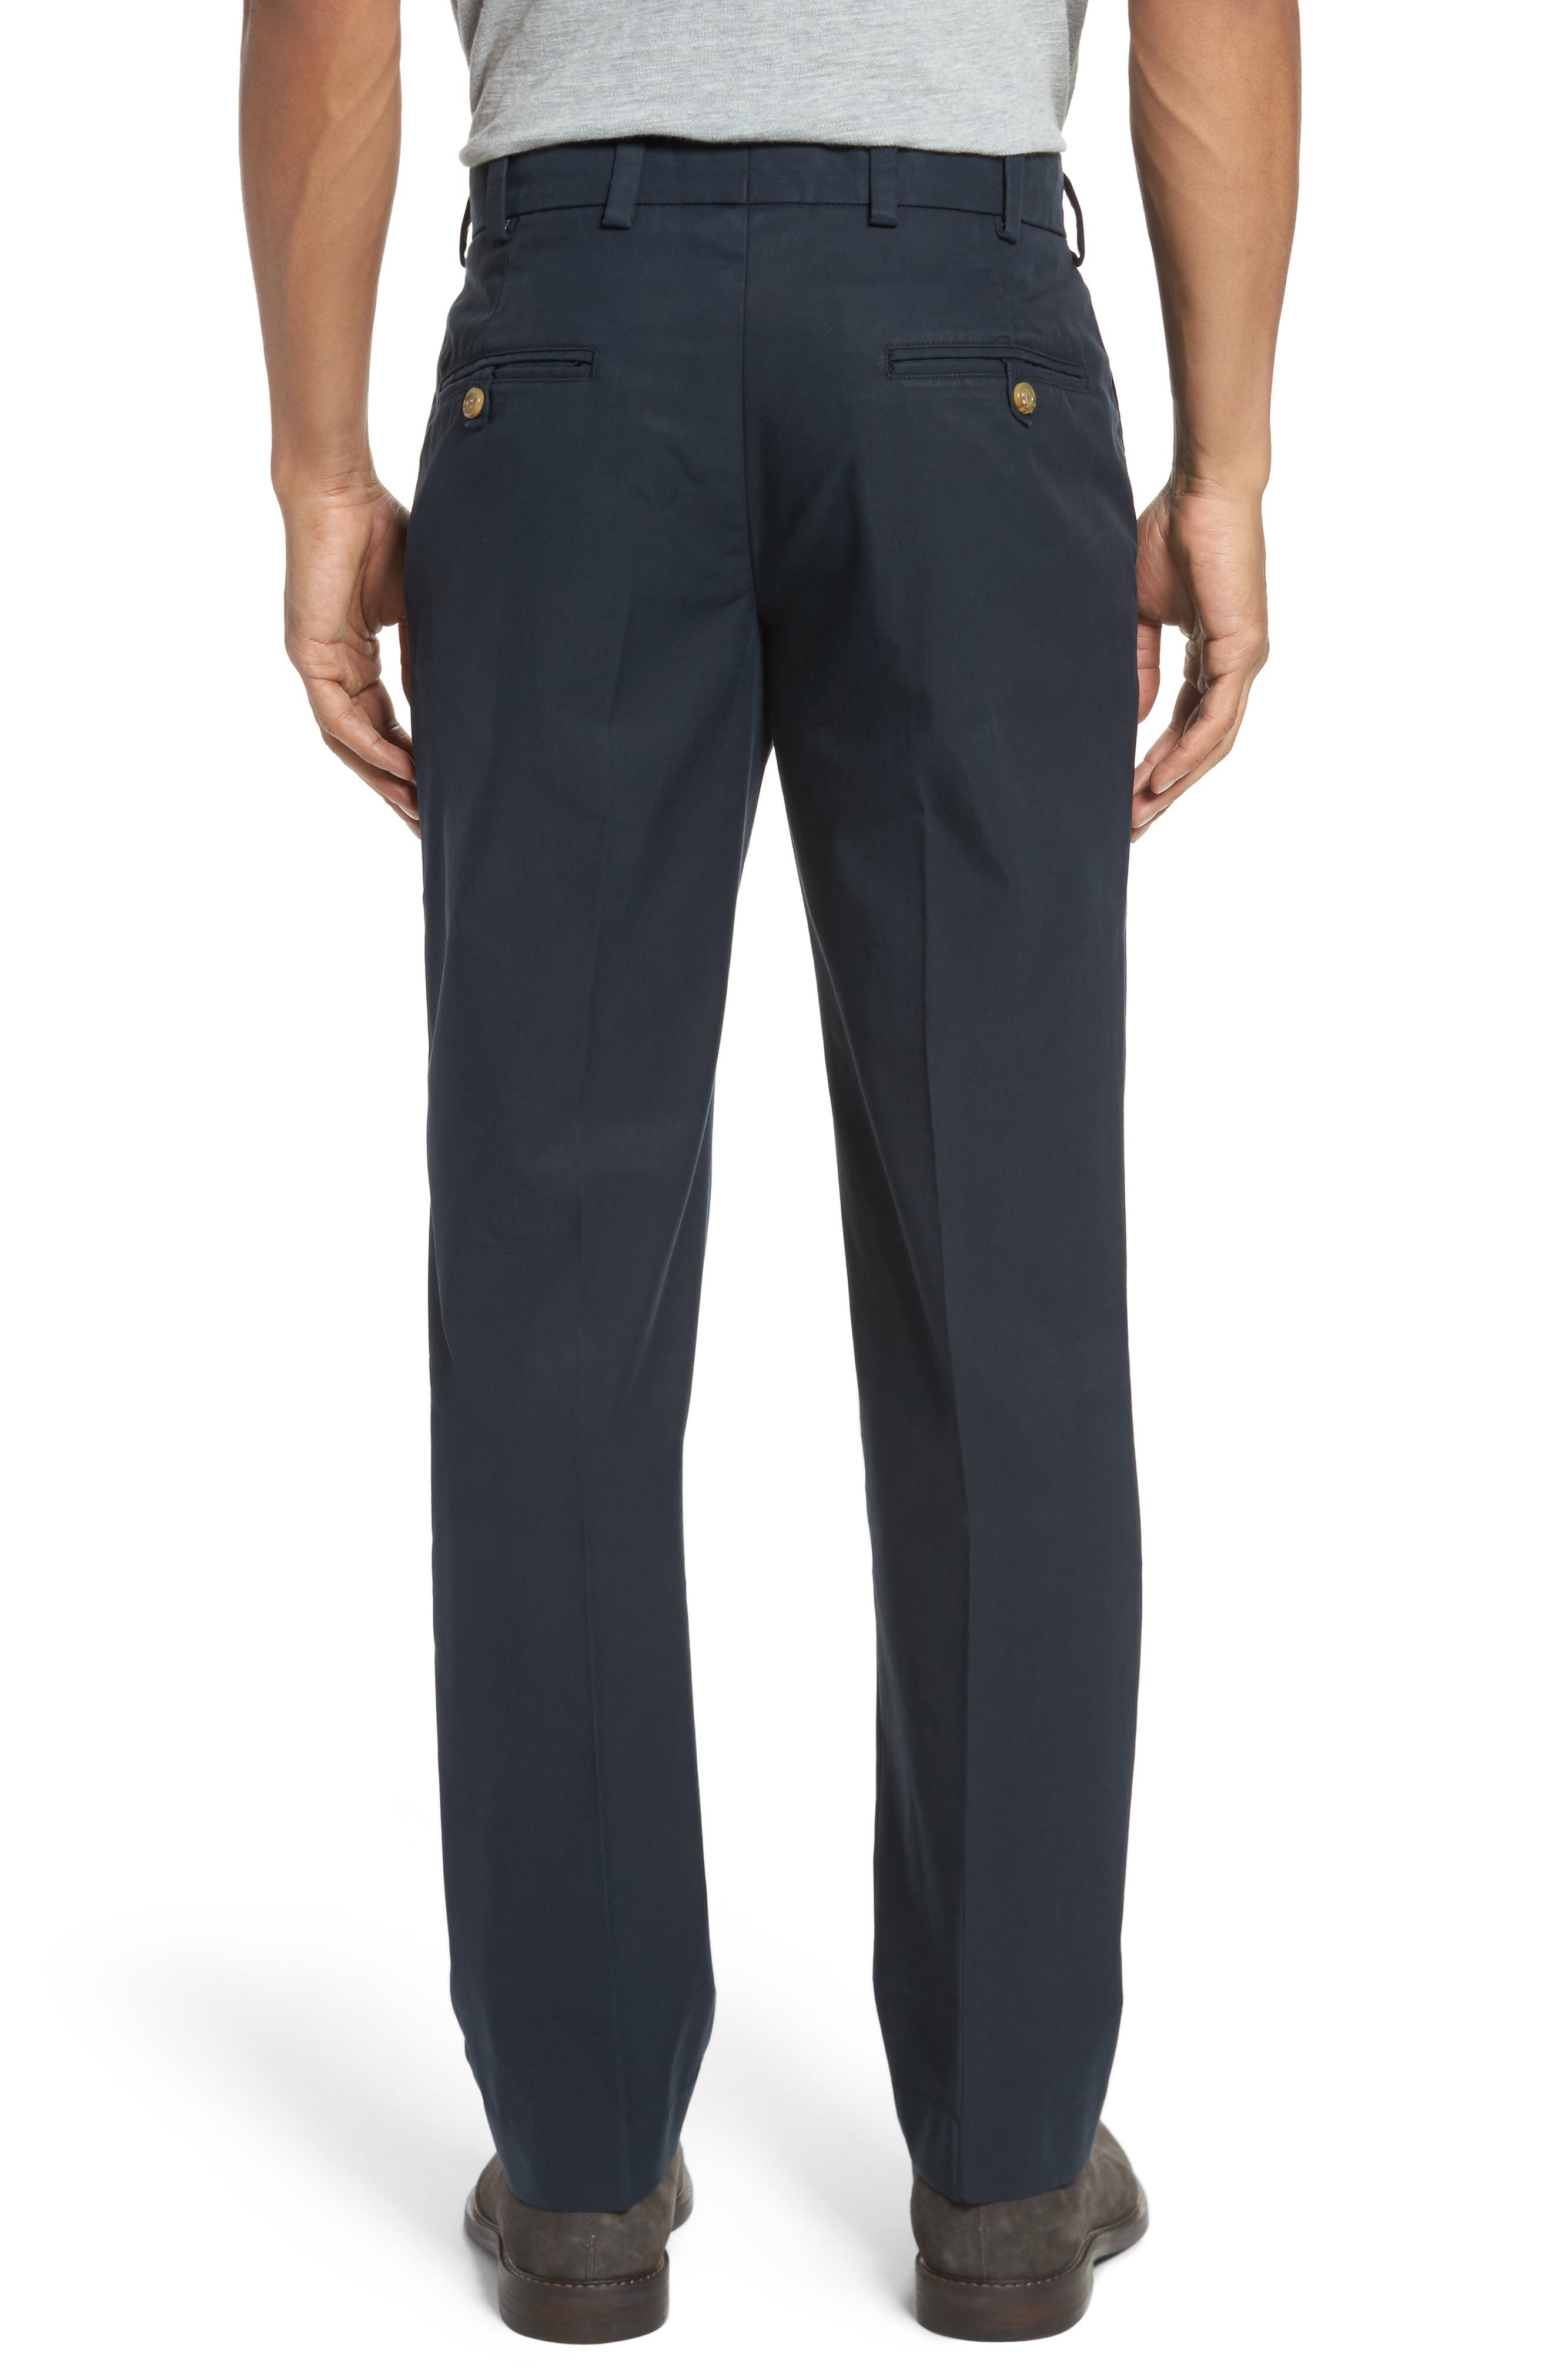 travel pants | Nordstrom